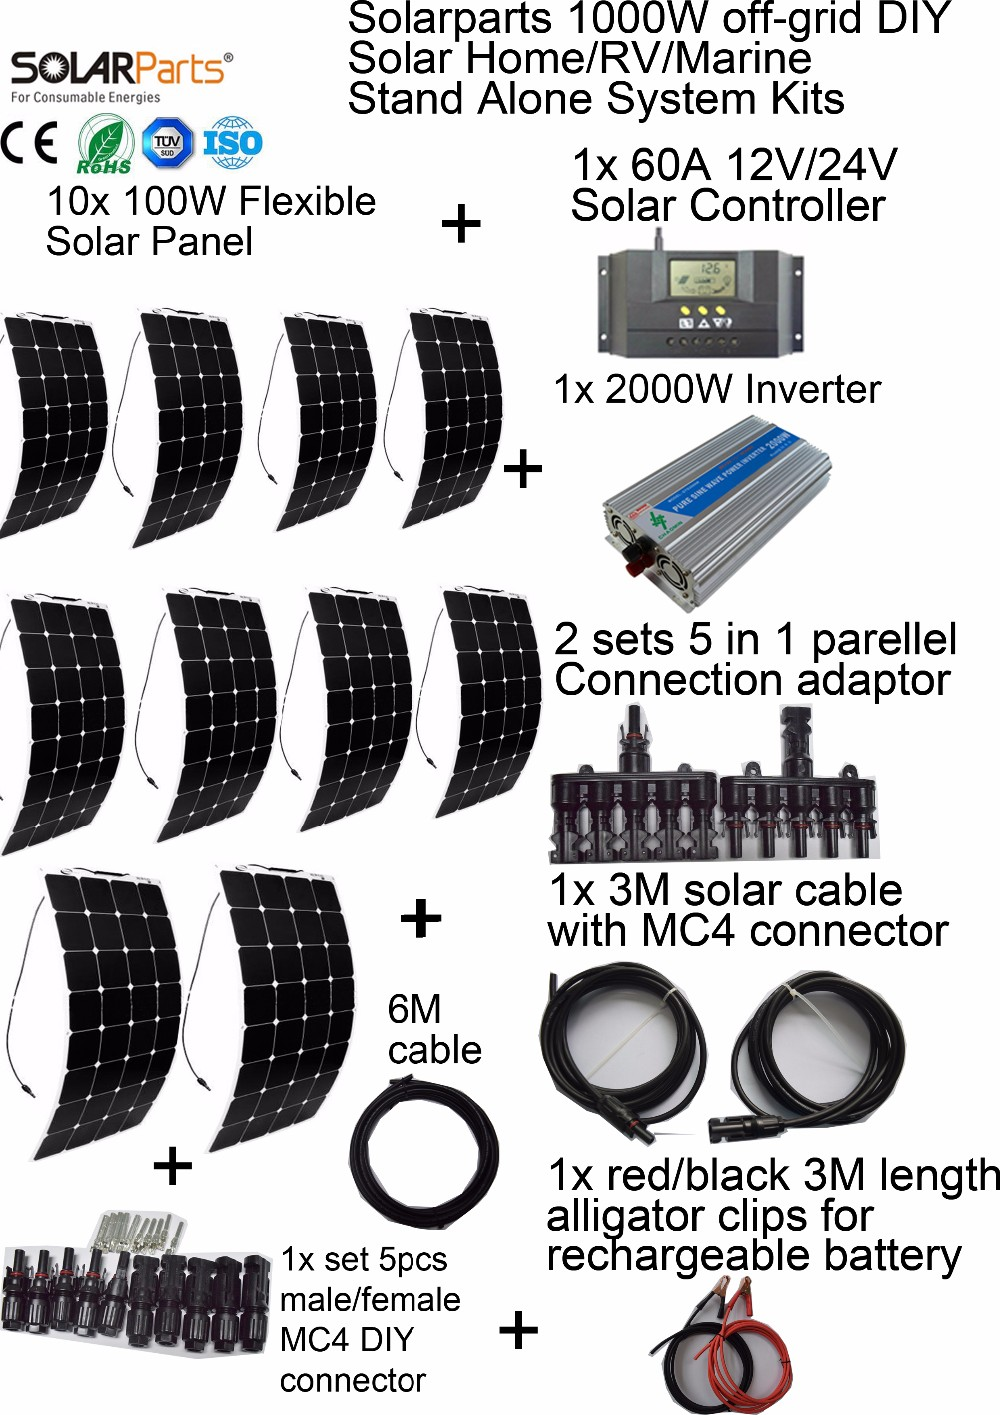 Solarparts 1000W off-grid Solar System KITS flexible solar